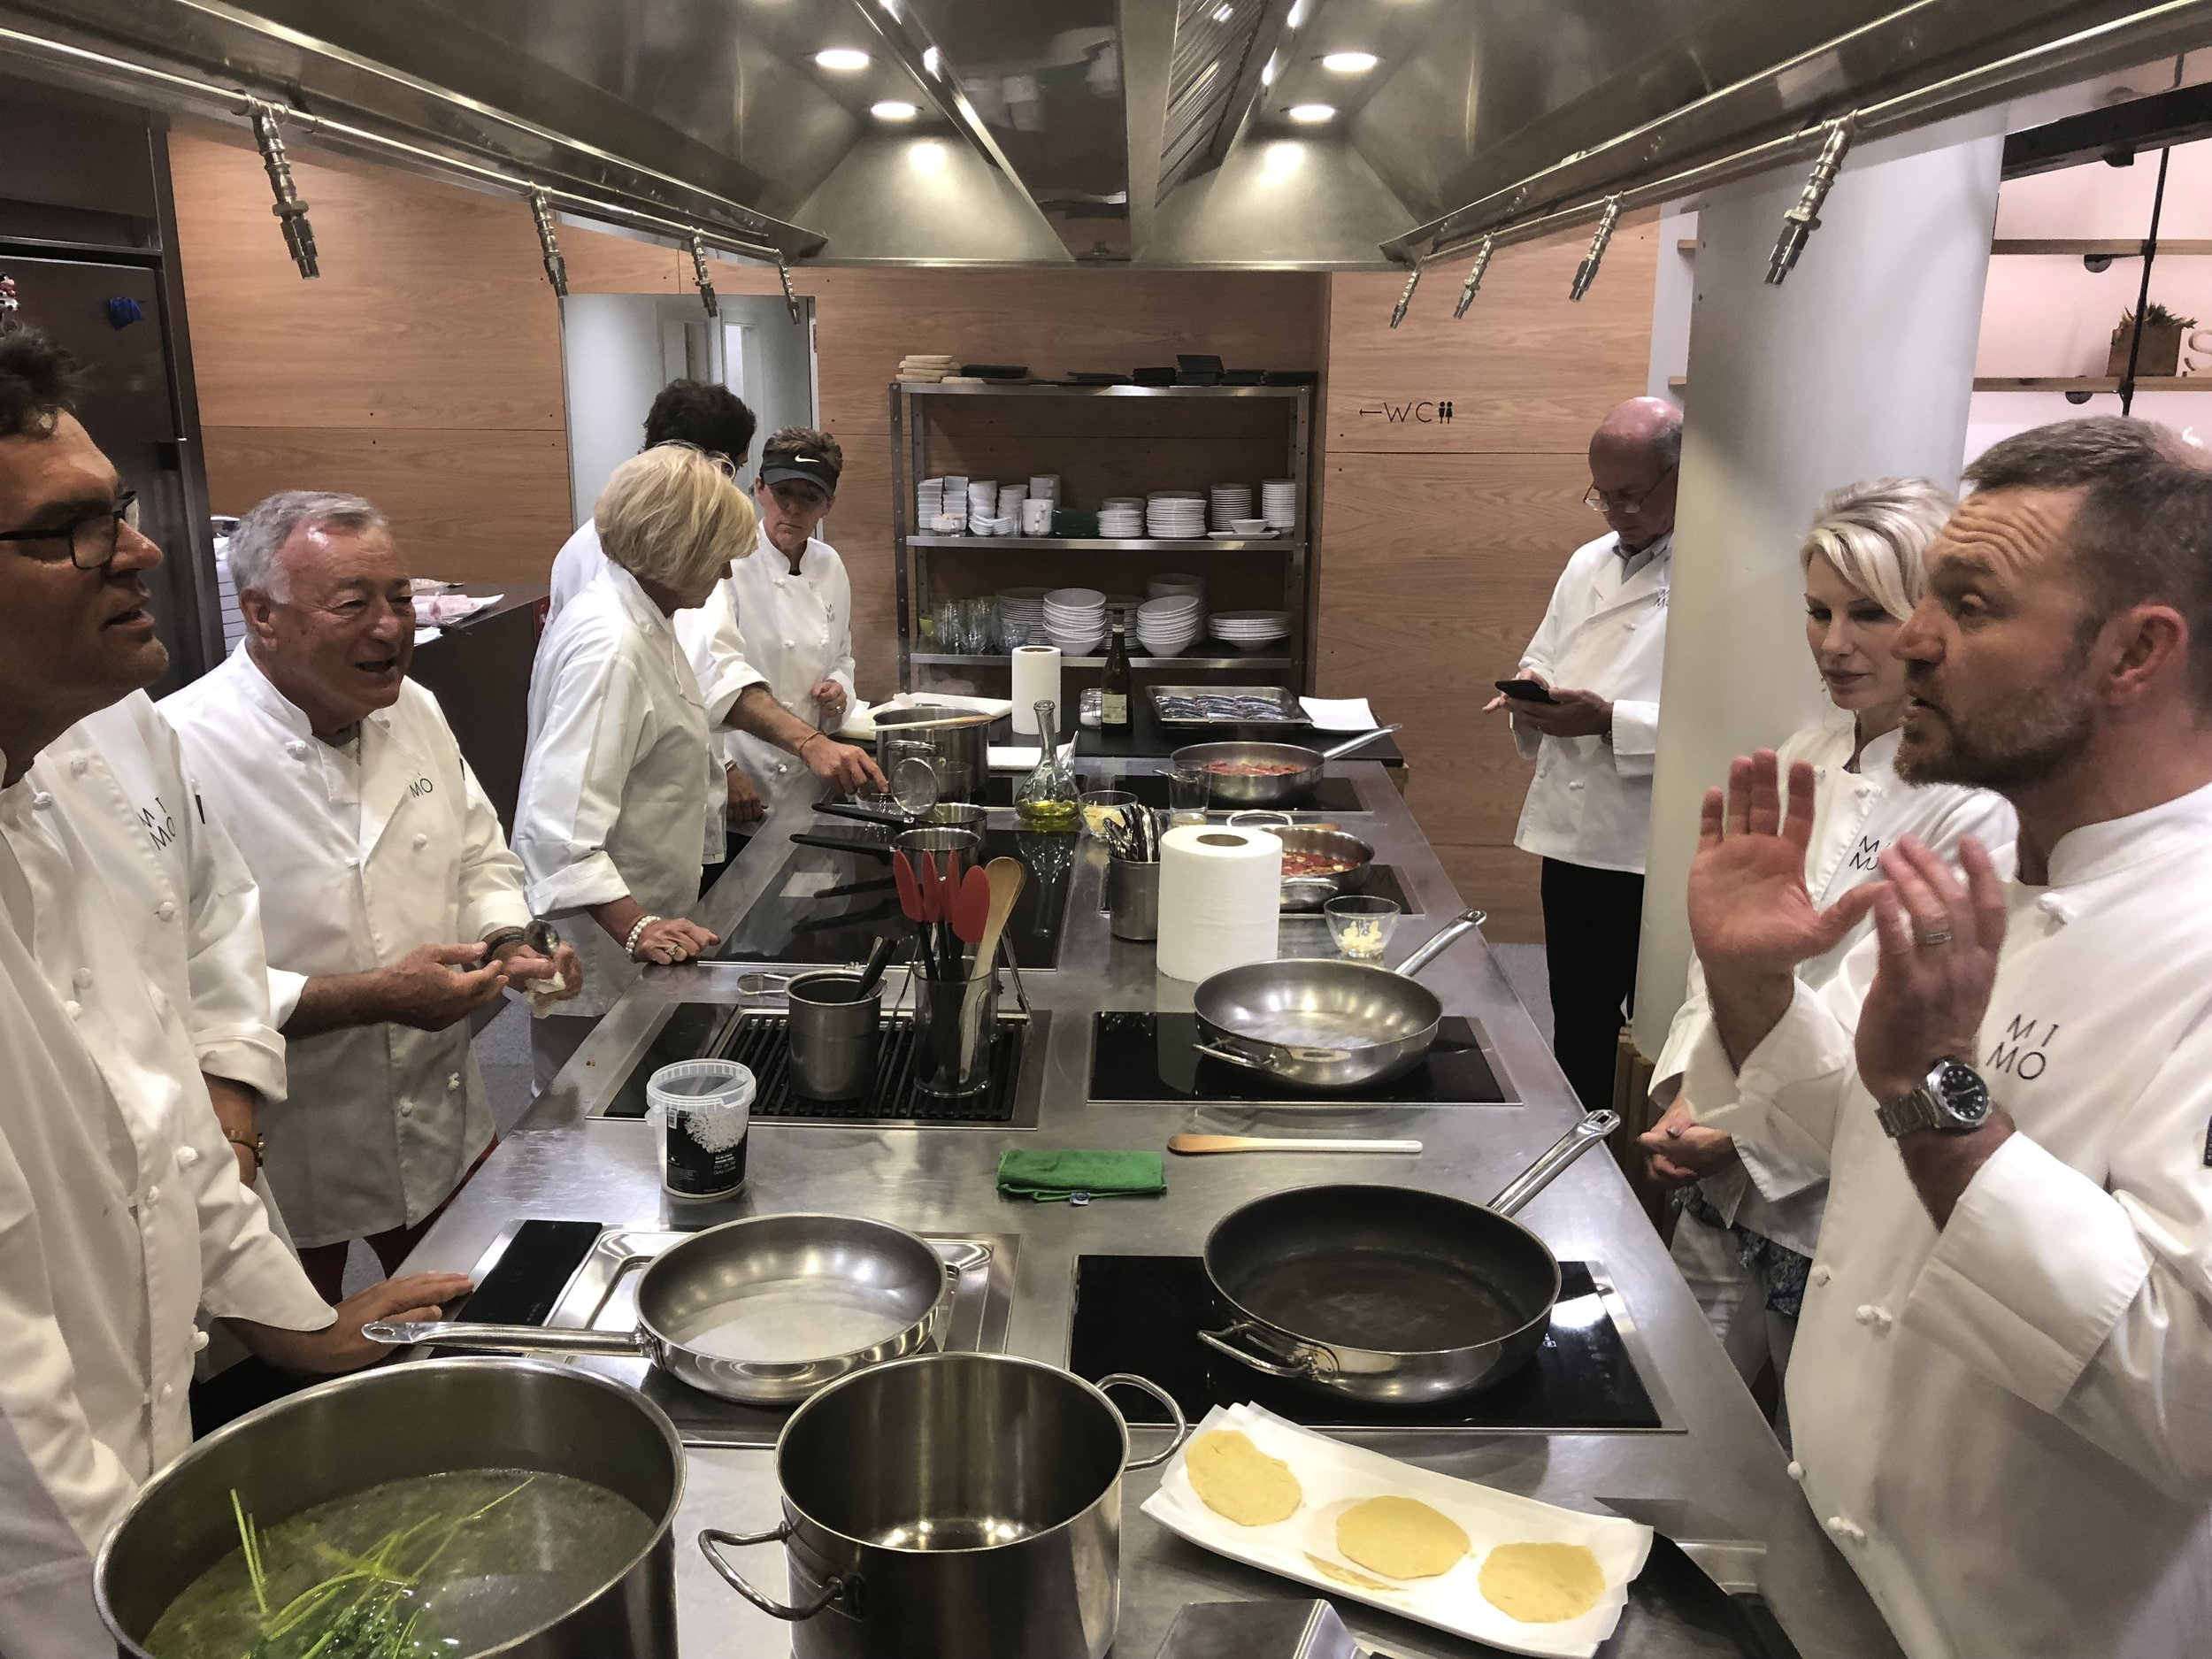 Our Candelaria Design Travelers at the Mimo Sn Sebastian School of Cooking